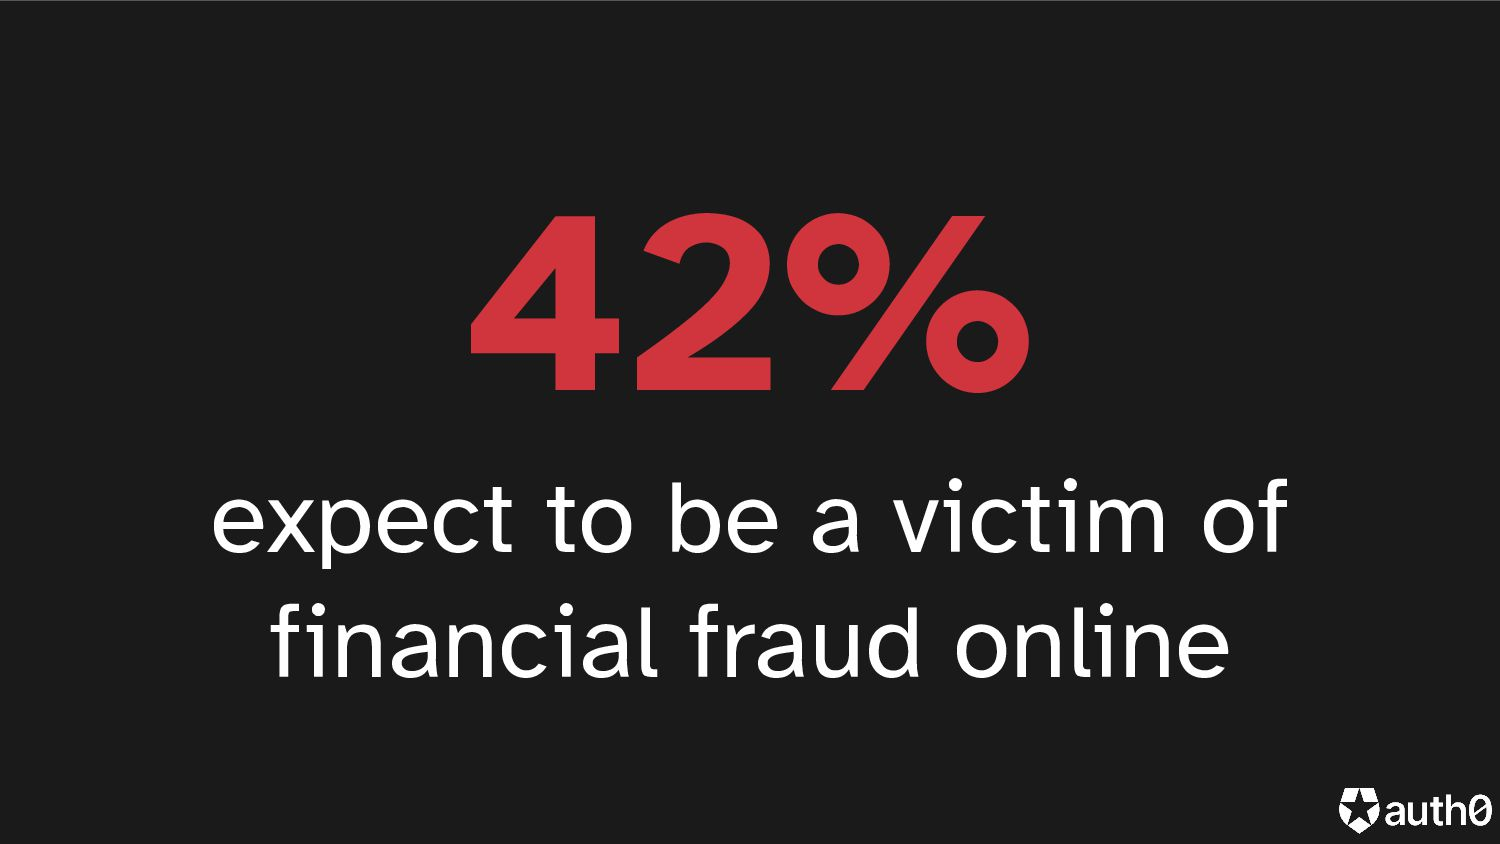 42% expect to be victim of financial fraud onli...